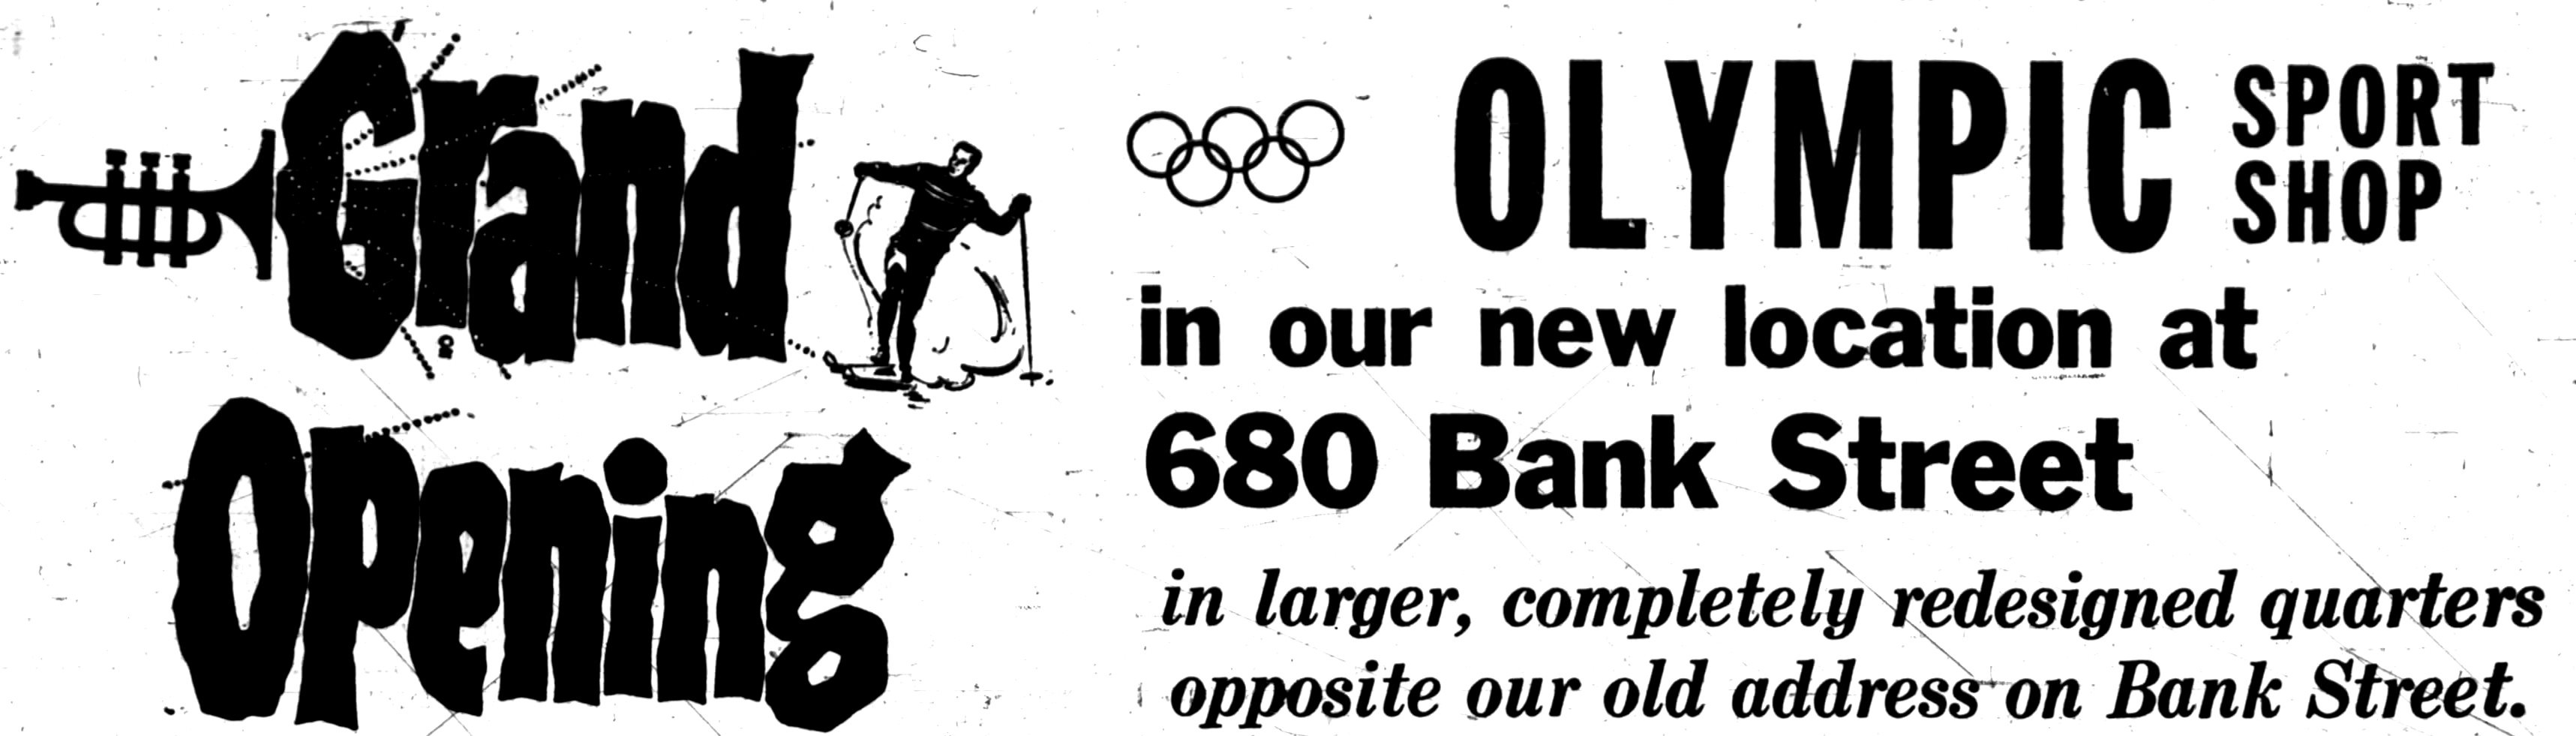 Images from Olympic Sport's grand opening announcement. Source: Ottawa Journal, October 26, 1967.